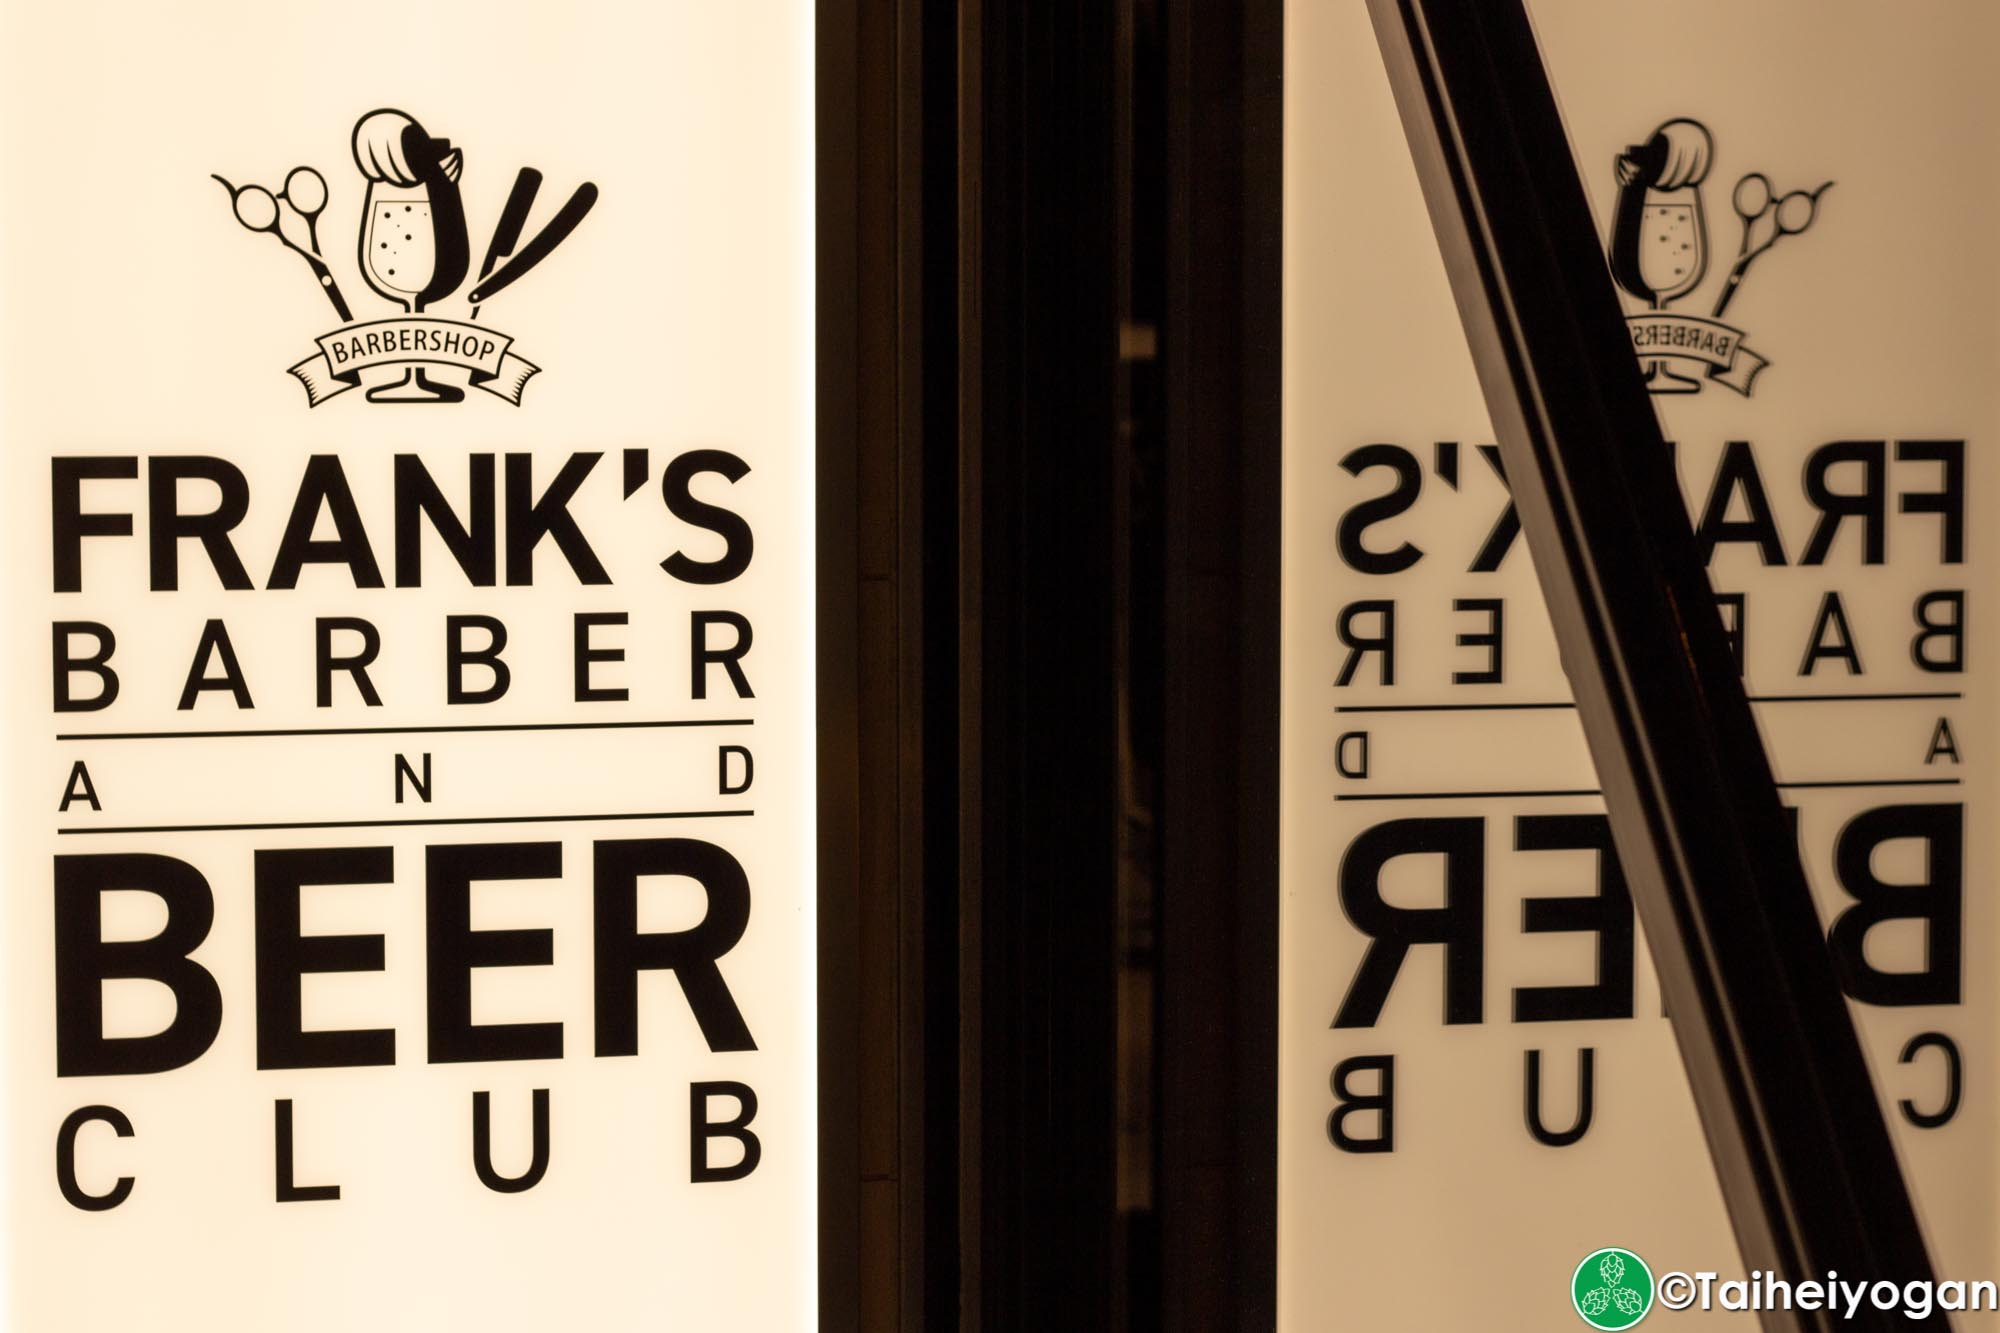 Frank's Barber and Beer Club - Entrance